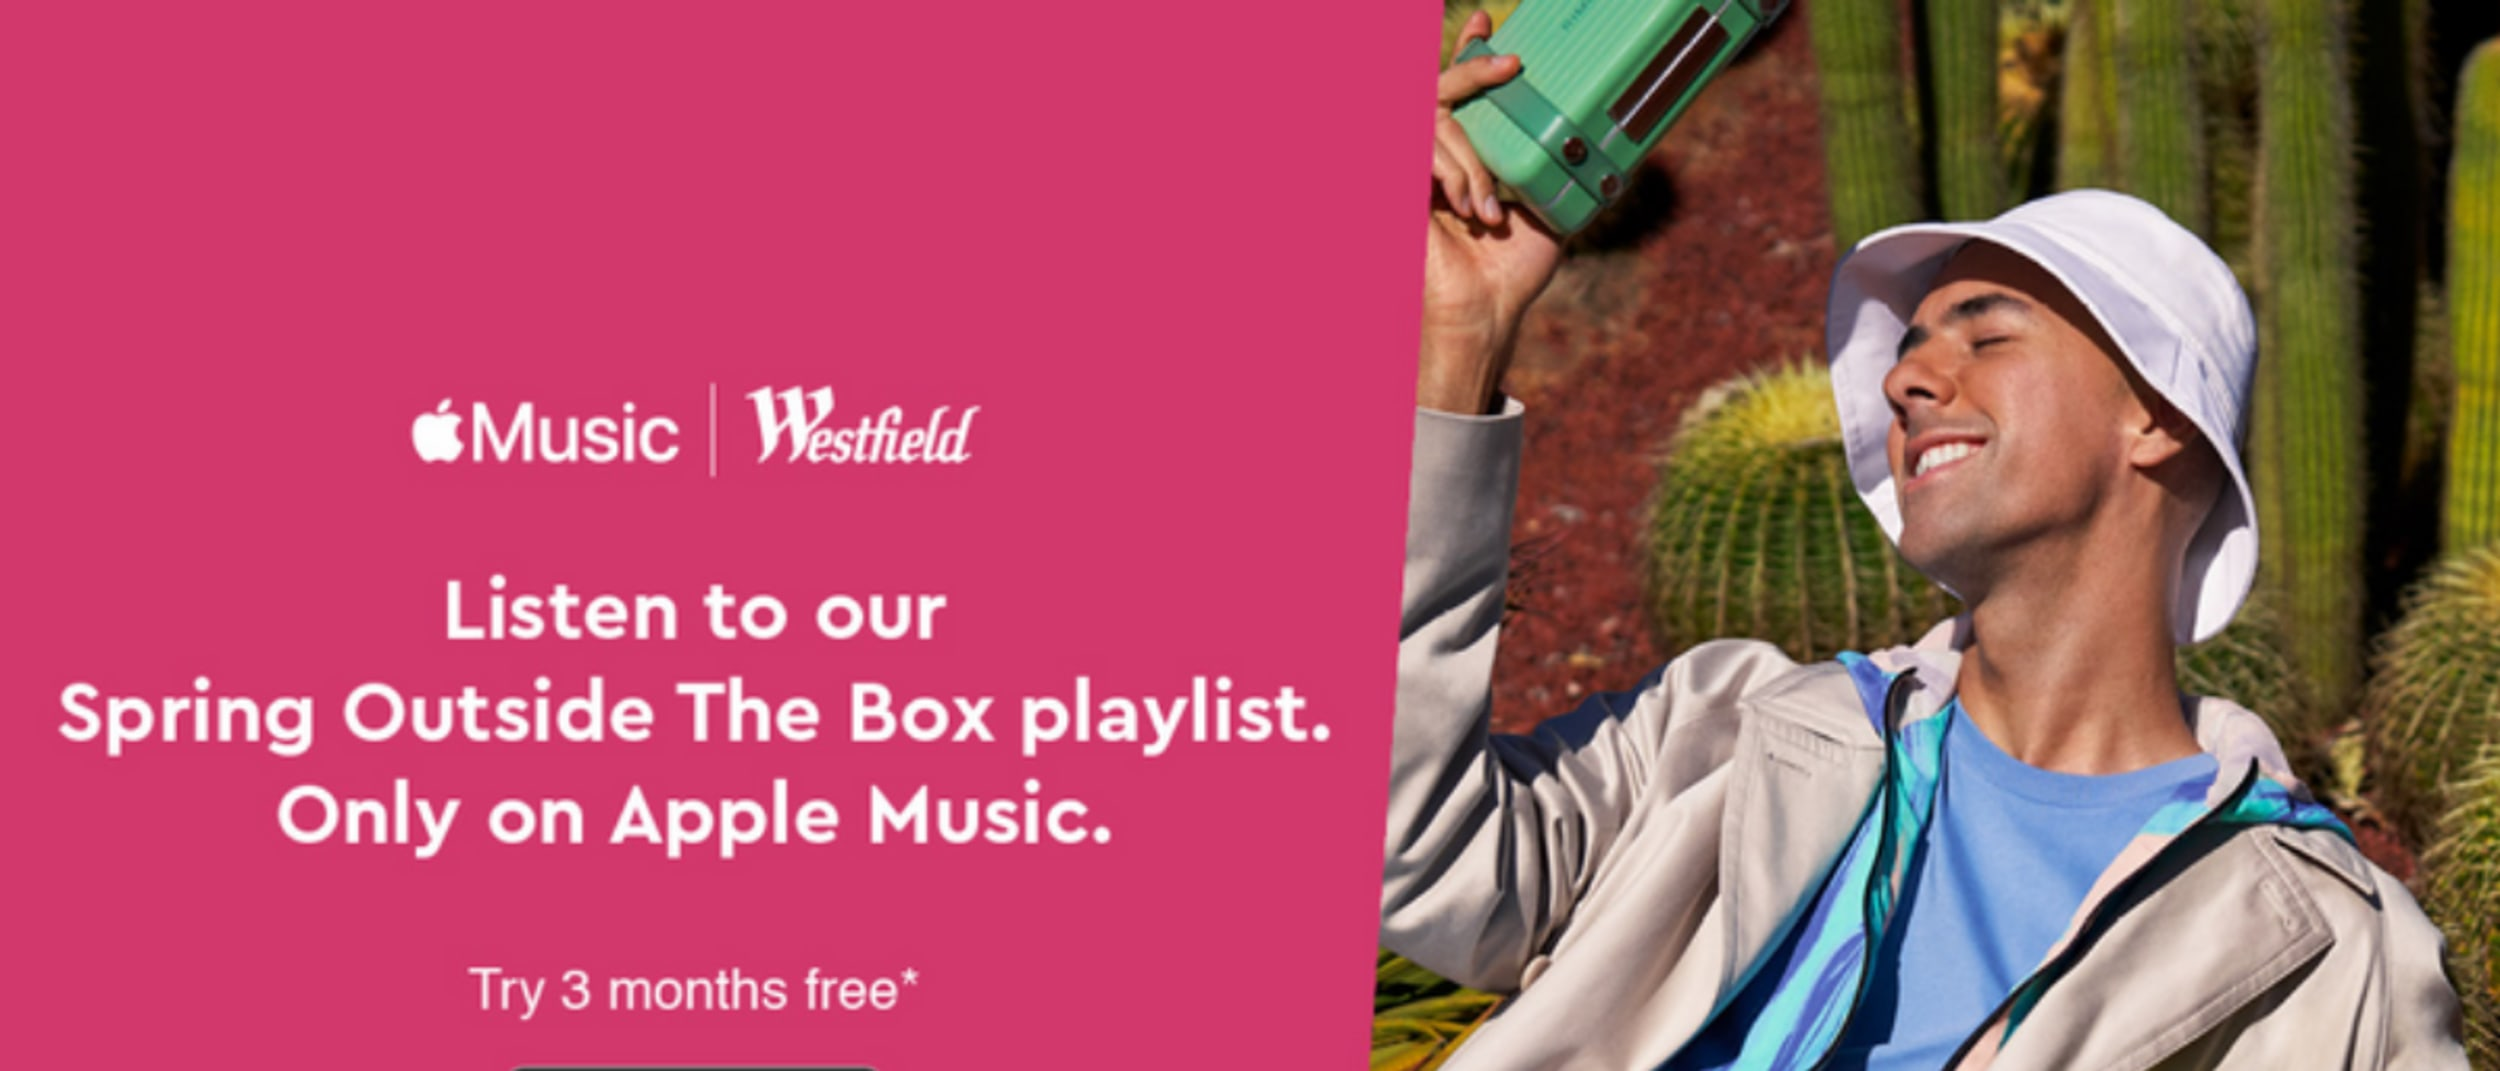 Discover our Spring Outside the Box playlist on Apple Music